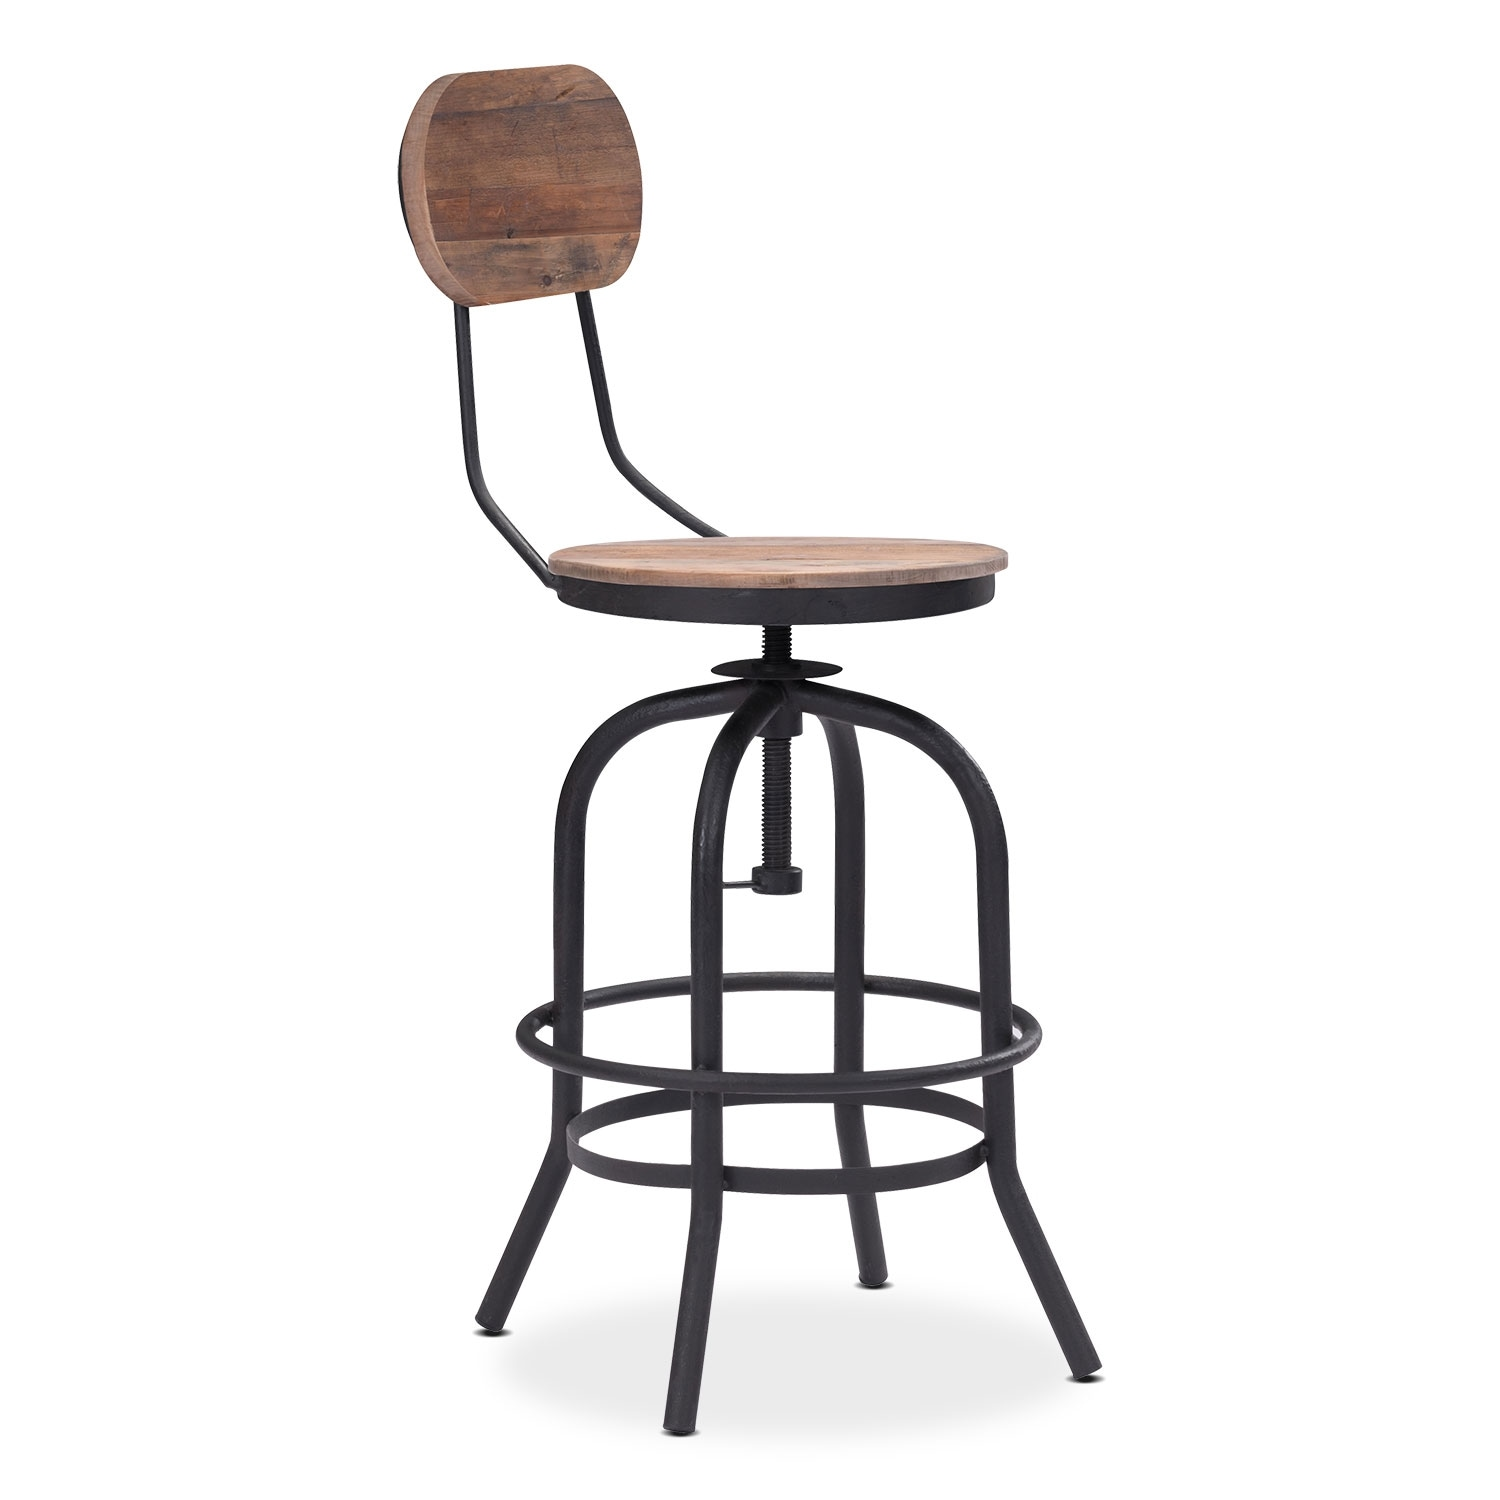 Elston Adjustable Counter-Height Stool